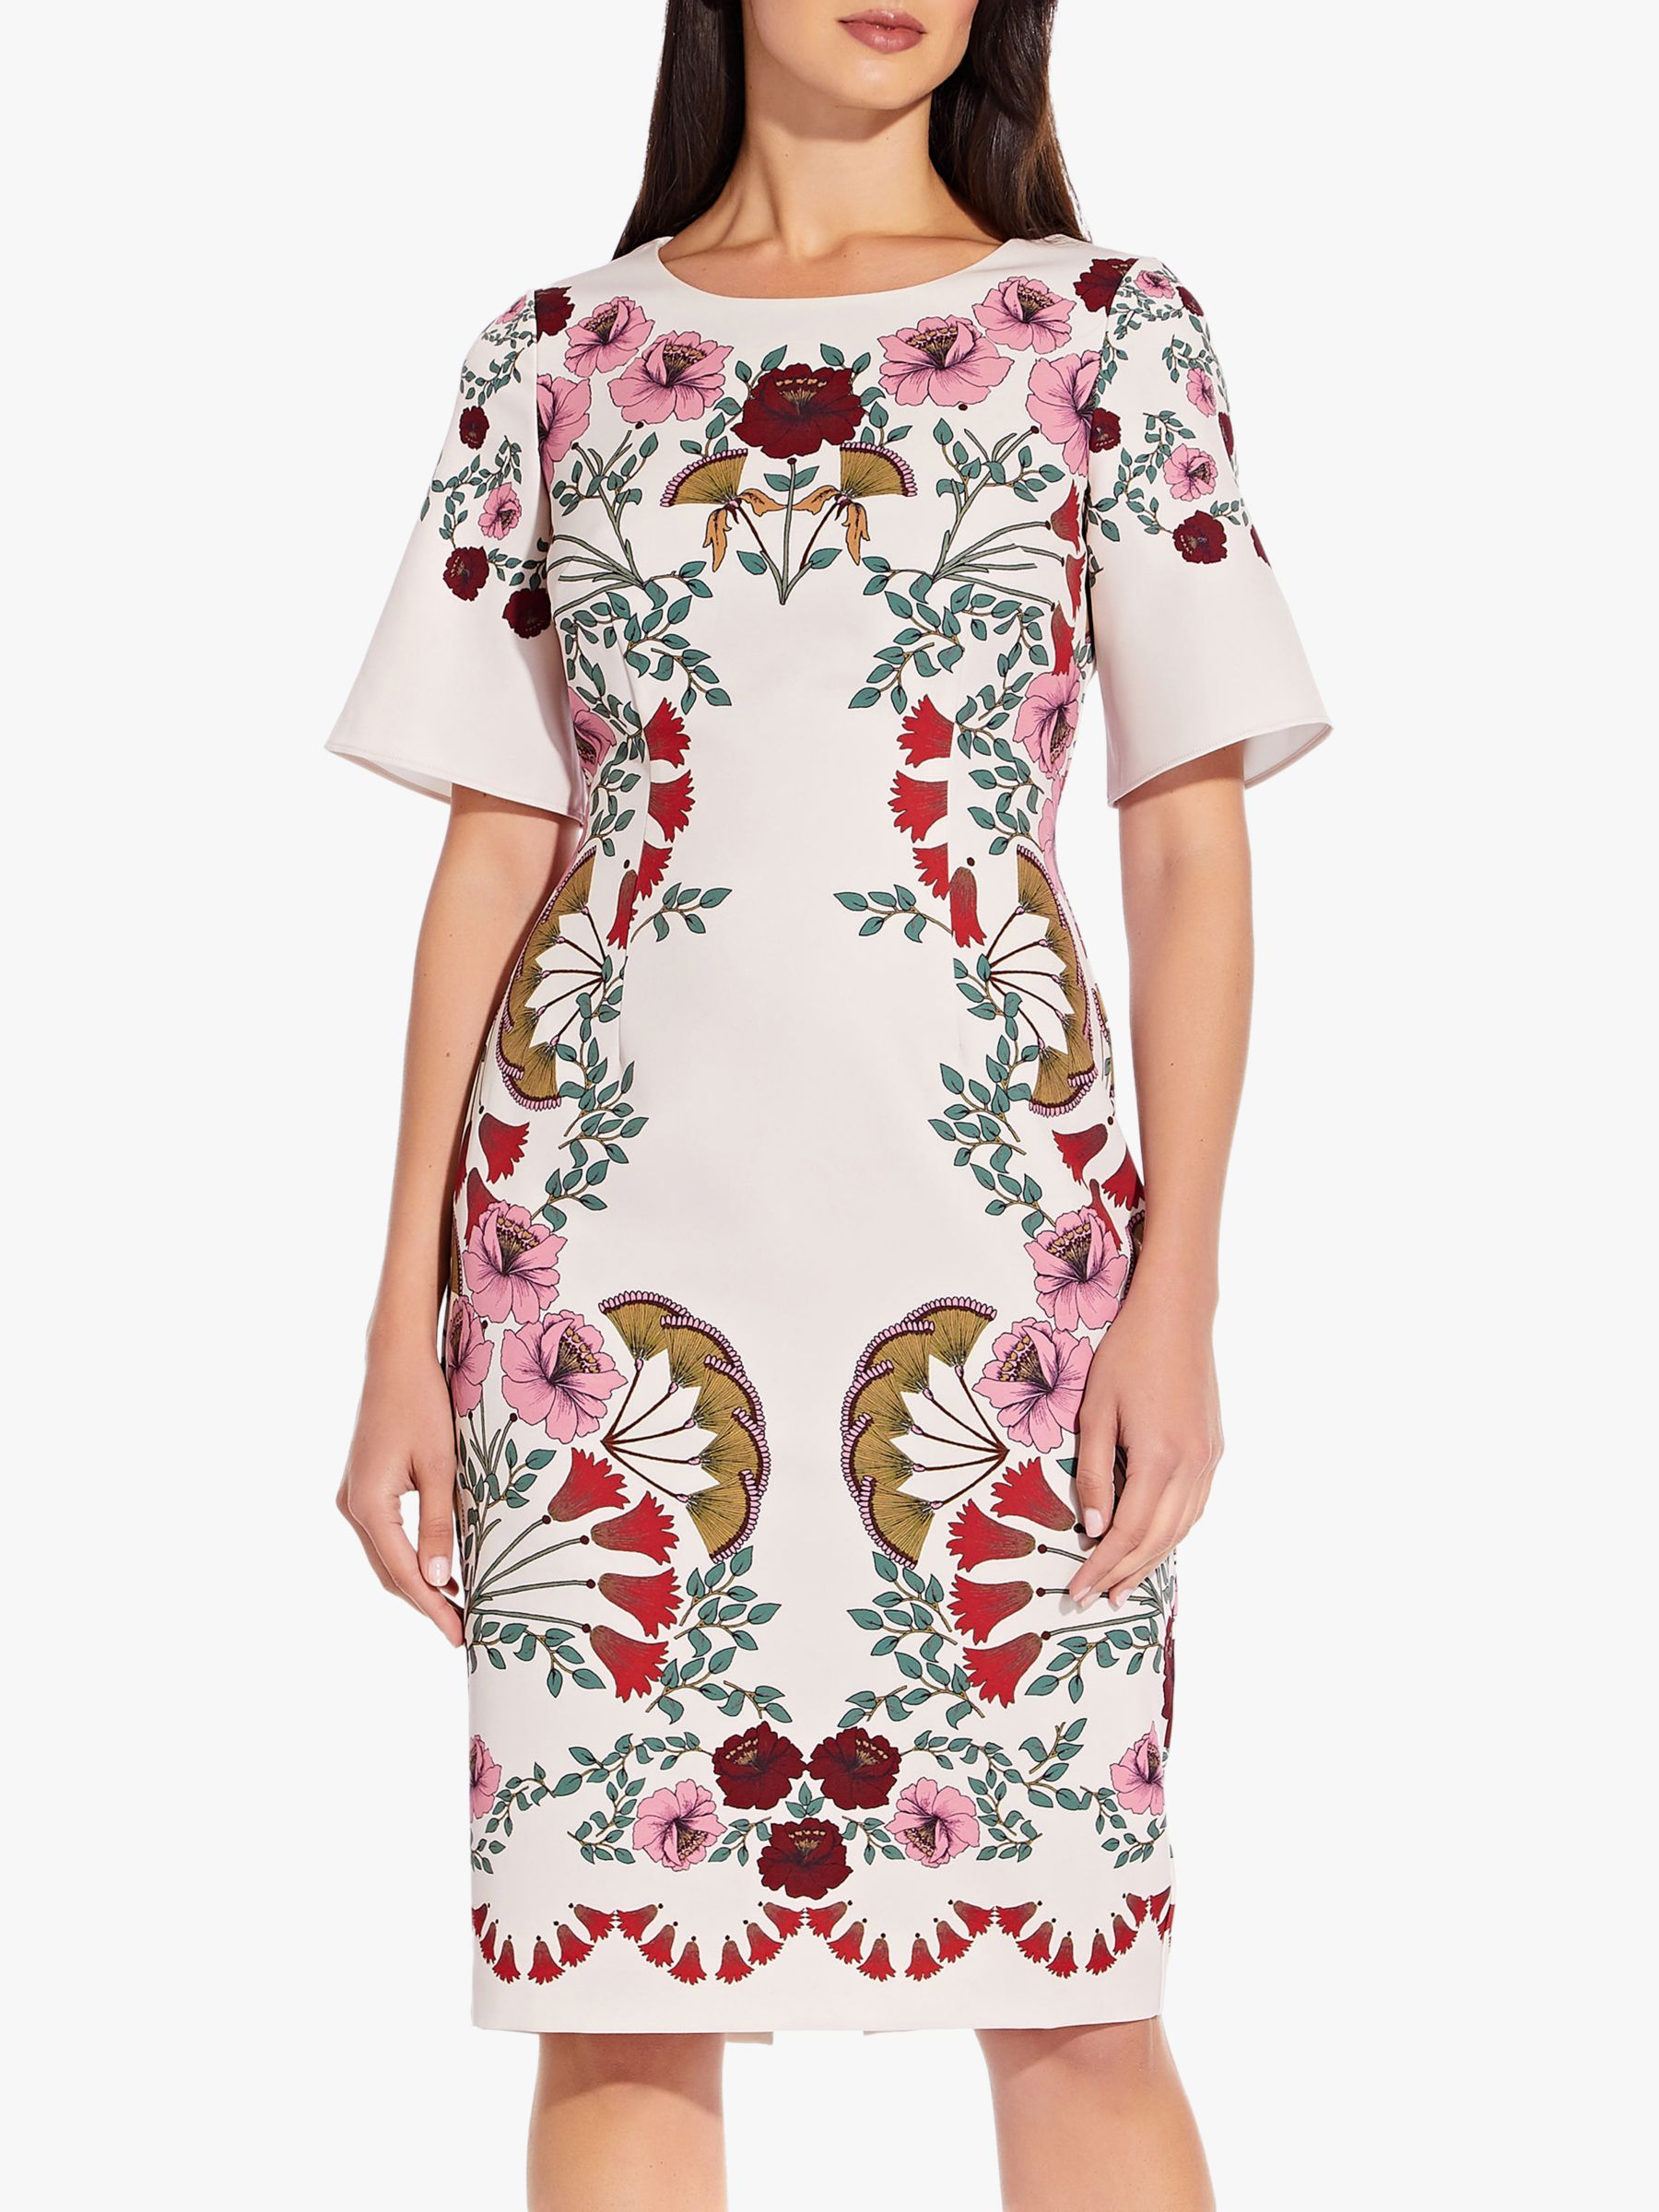 Adrianna Papell Adrianna Papell Folkloric Beauty Floral Dress, Pink